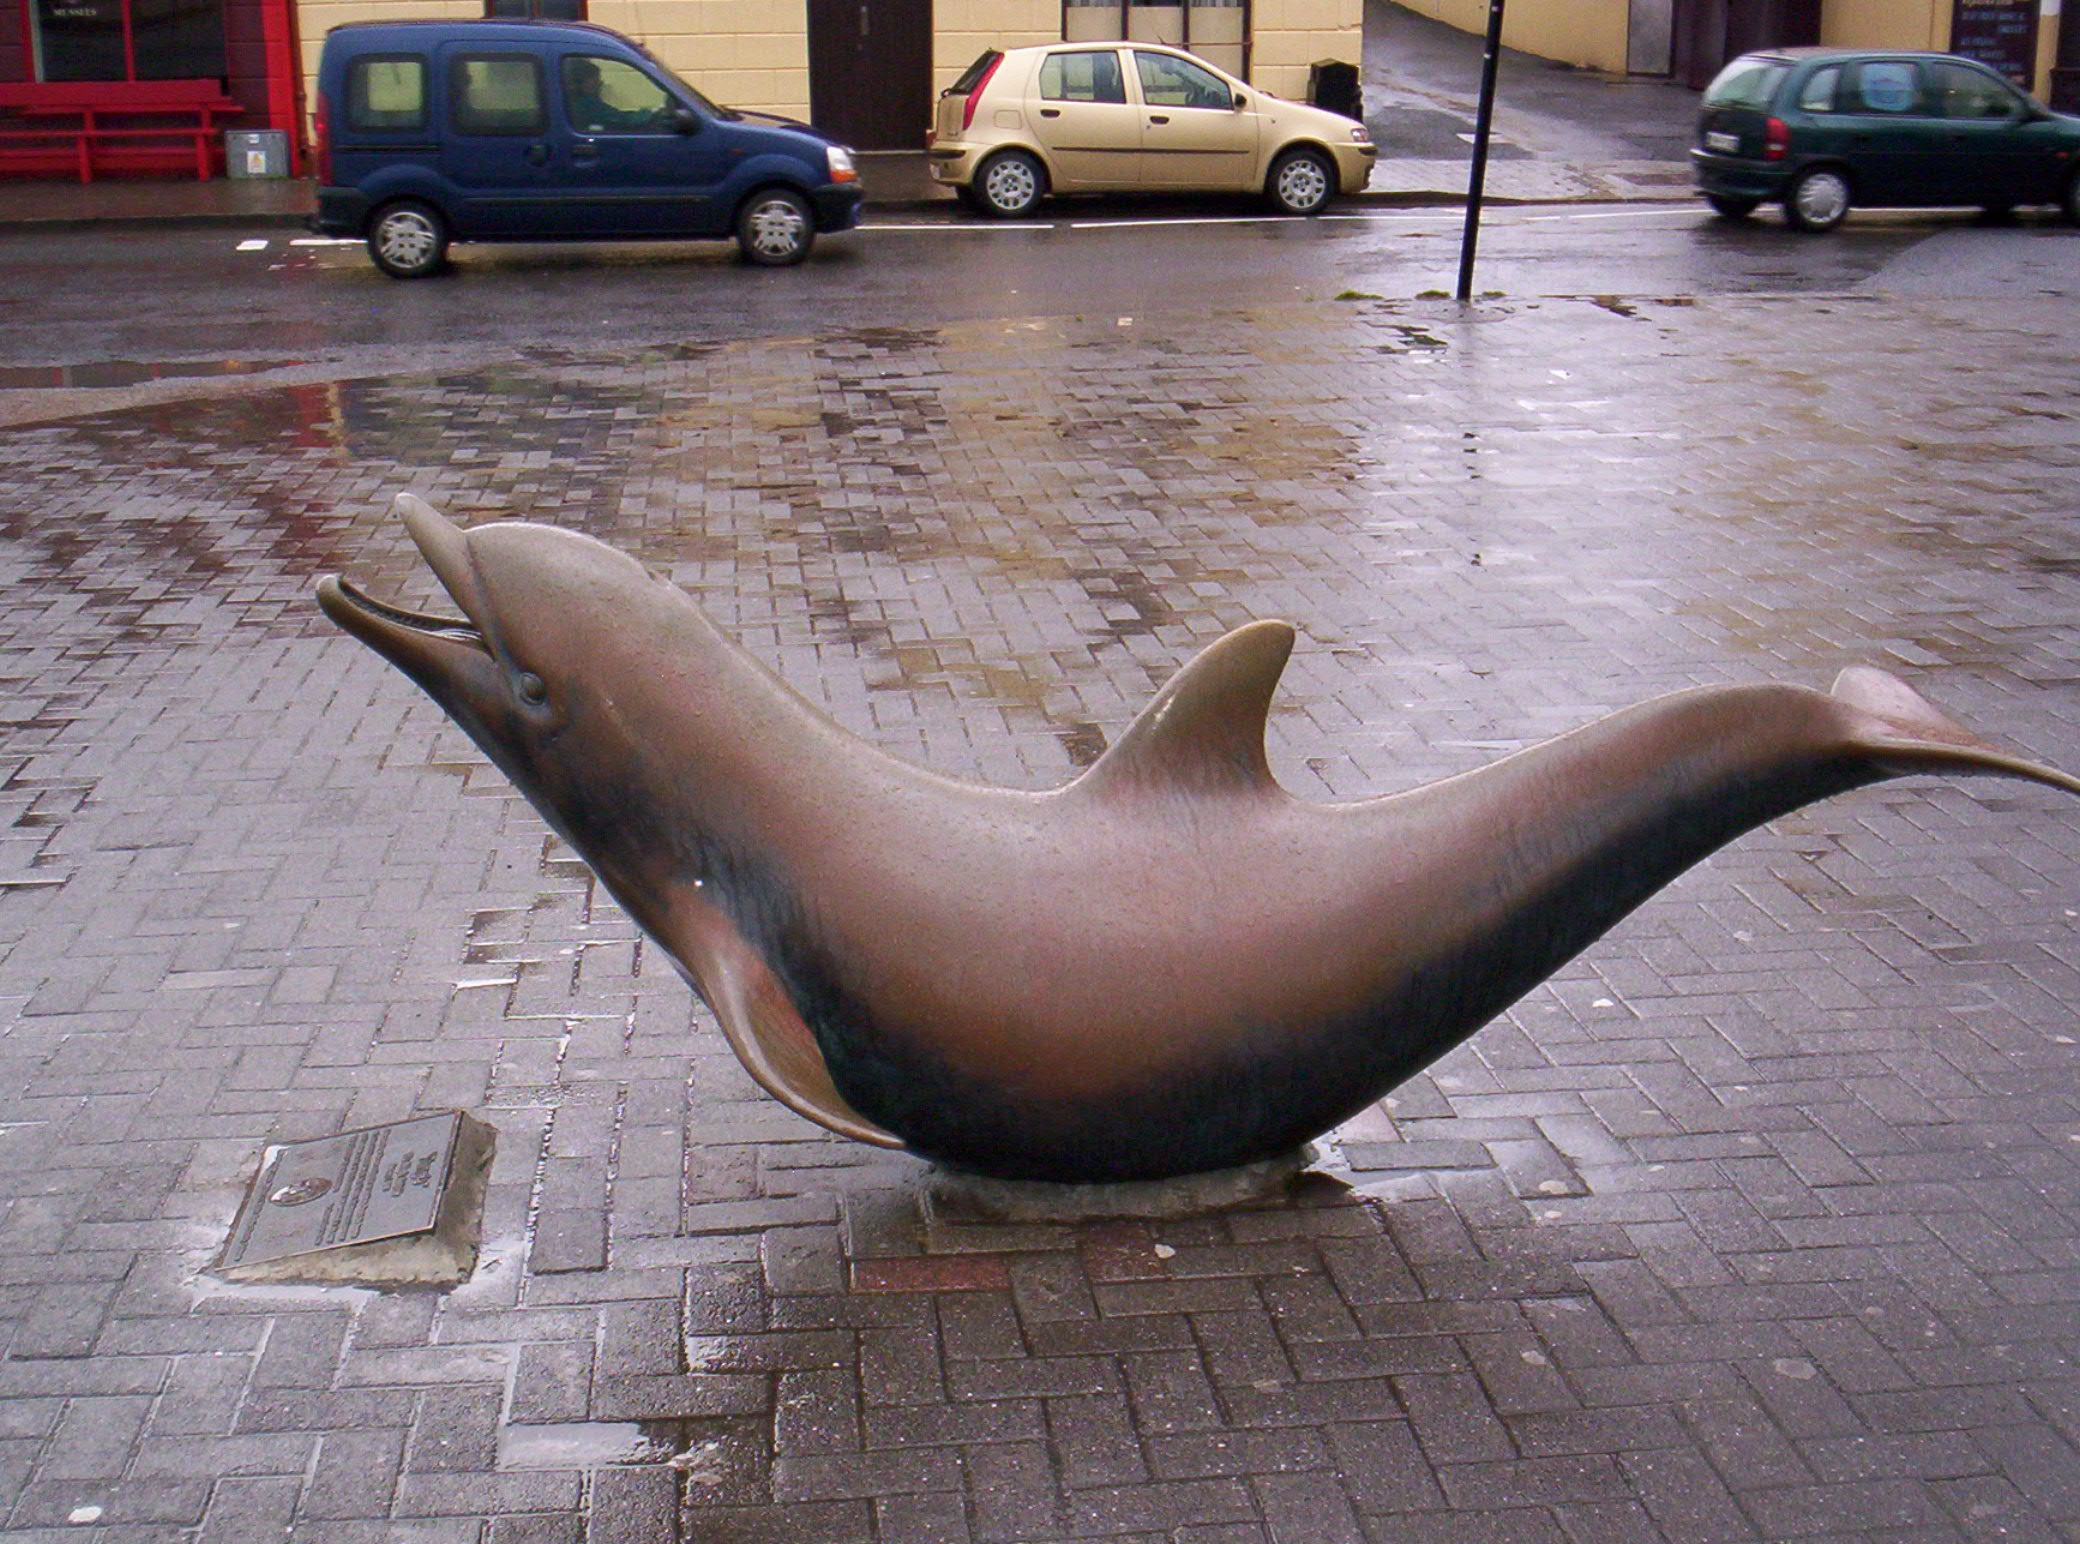 File Fungie The Dolphin Statue Jpg Wikipedia They hunt by emitting ultrasonic sounds, which bounces off of fish and other prey, enabling them to see an image in their. https en wikipedia org wiki file fungie the dolphin statue jpg